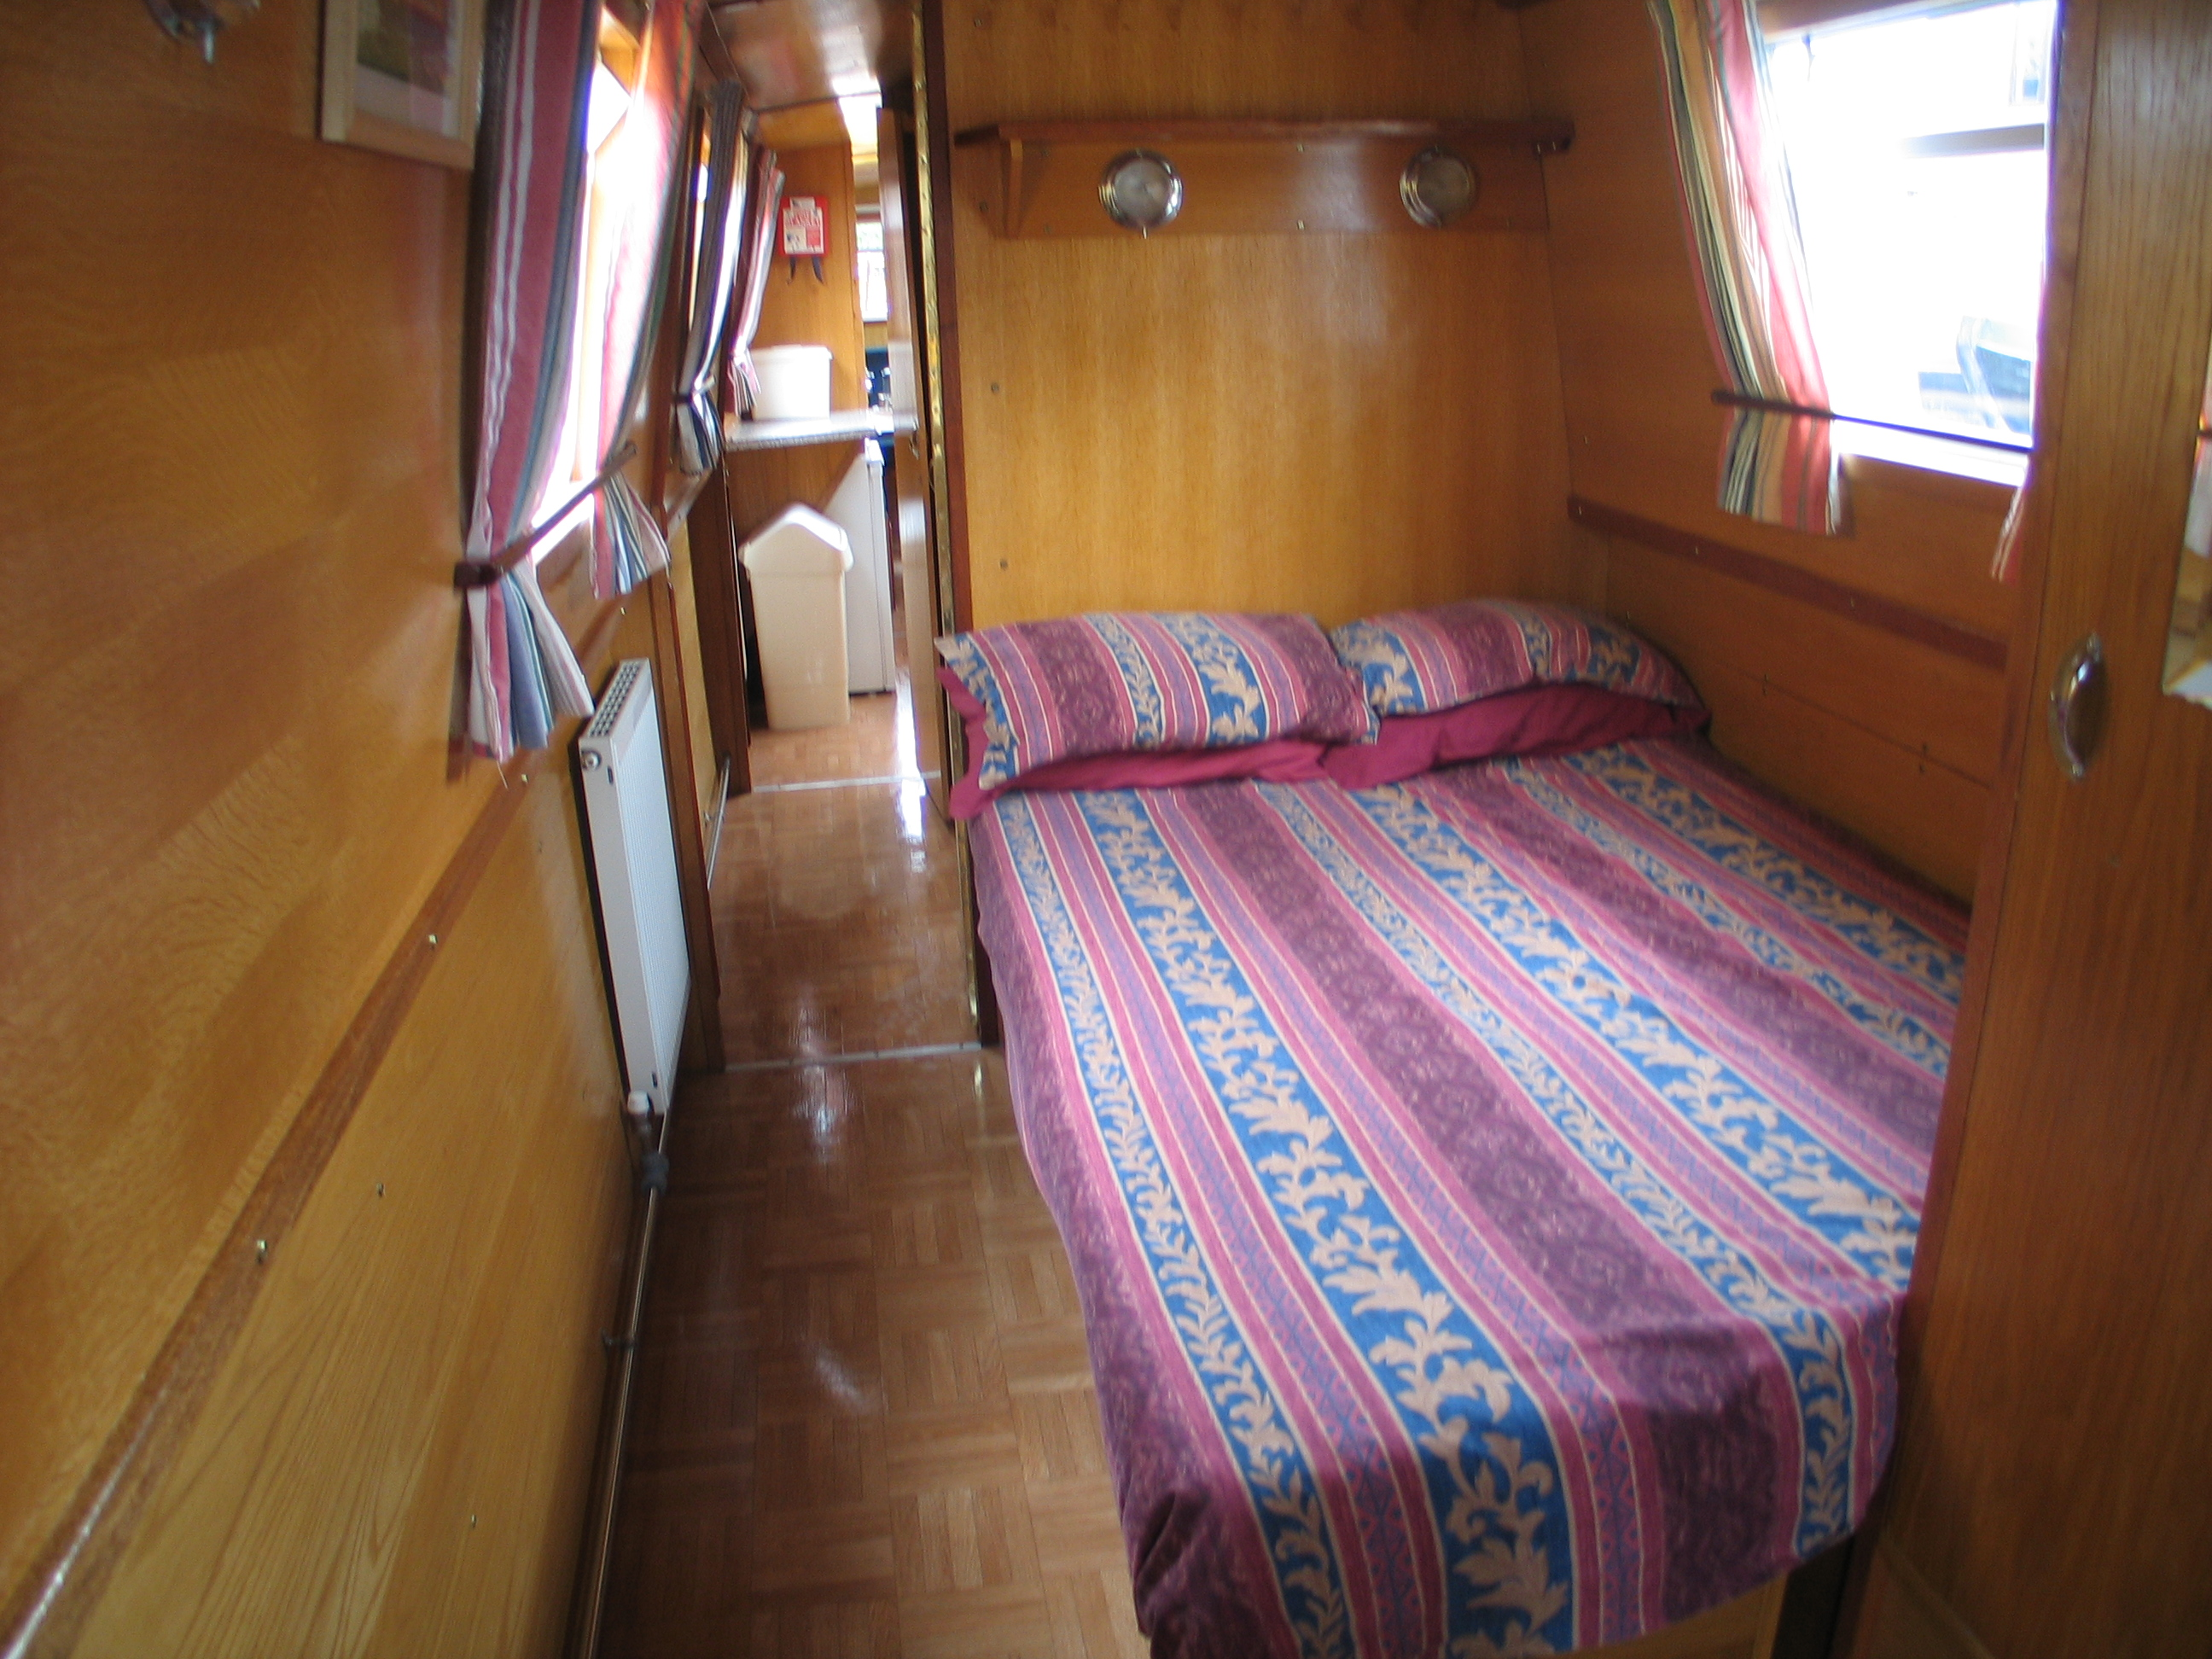 The Tyne class canal boat